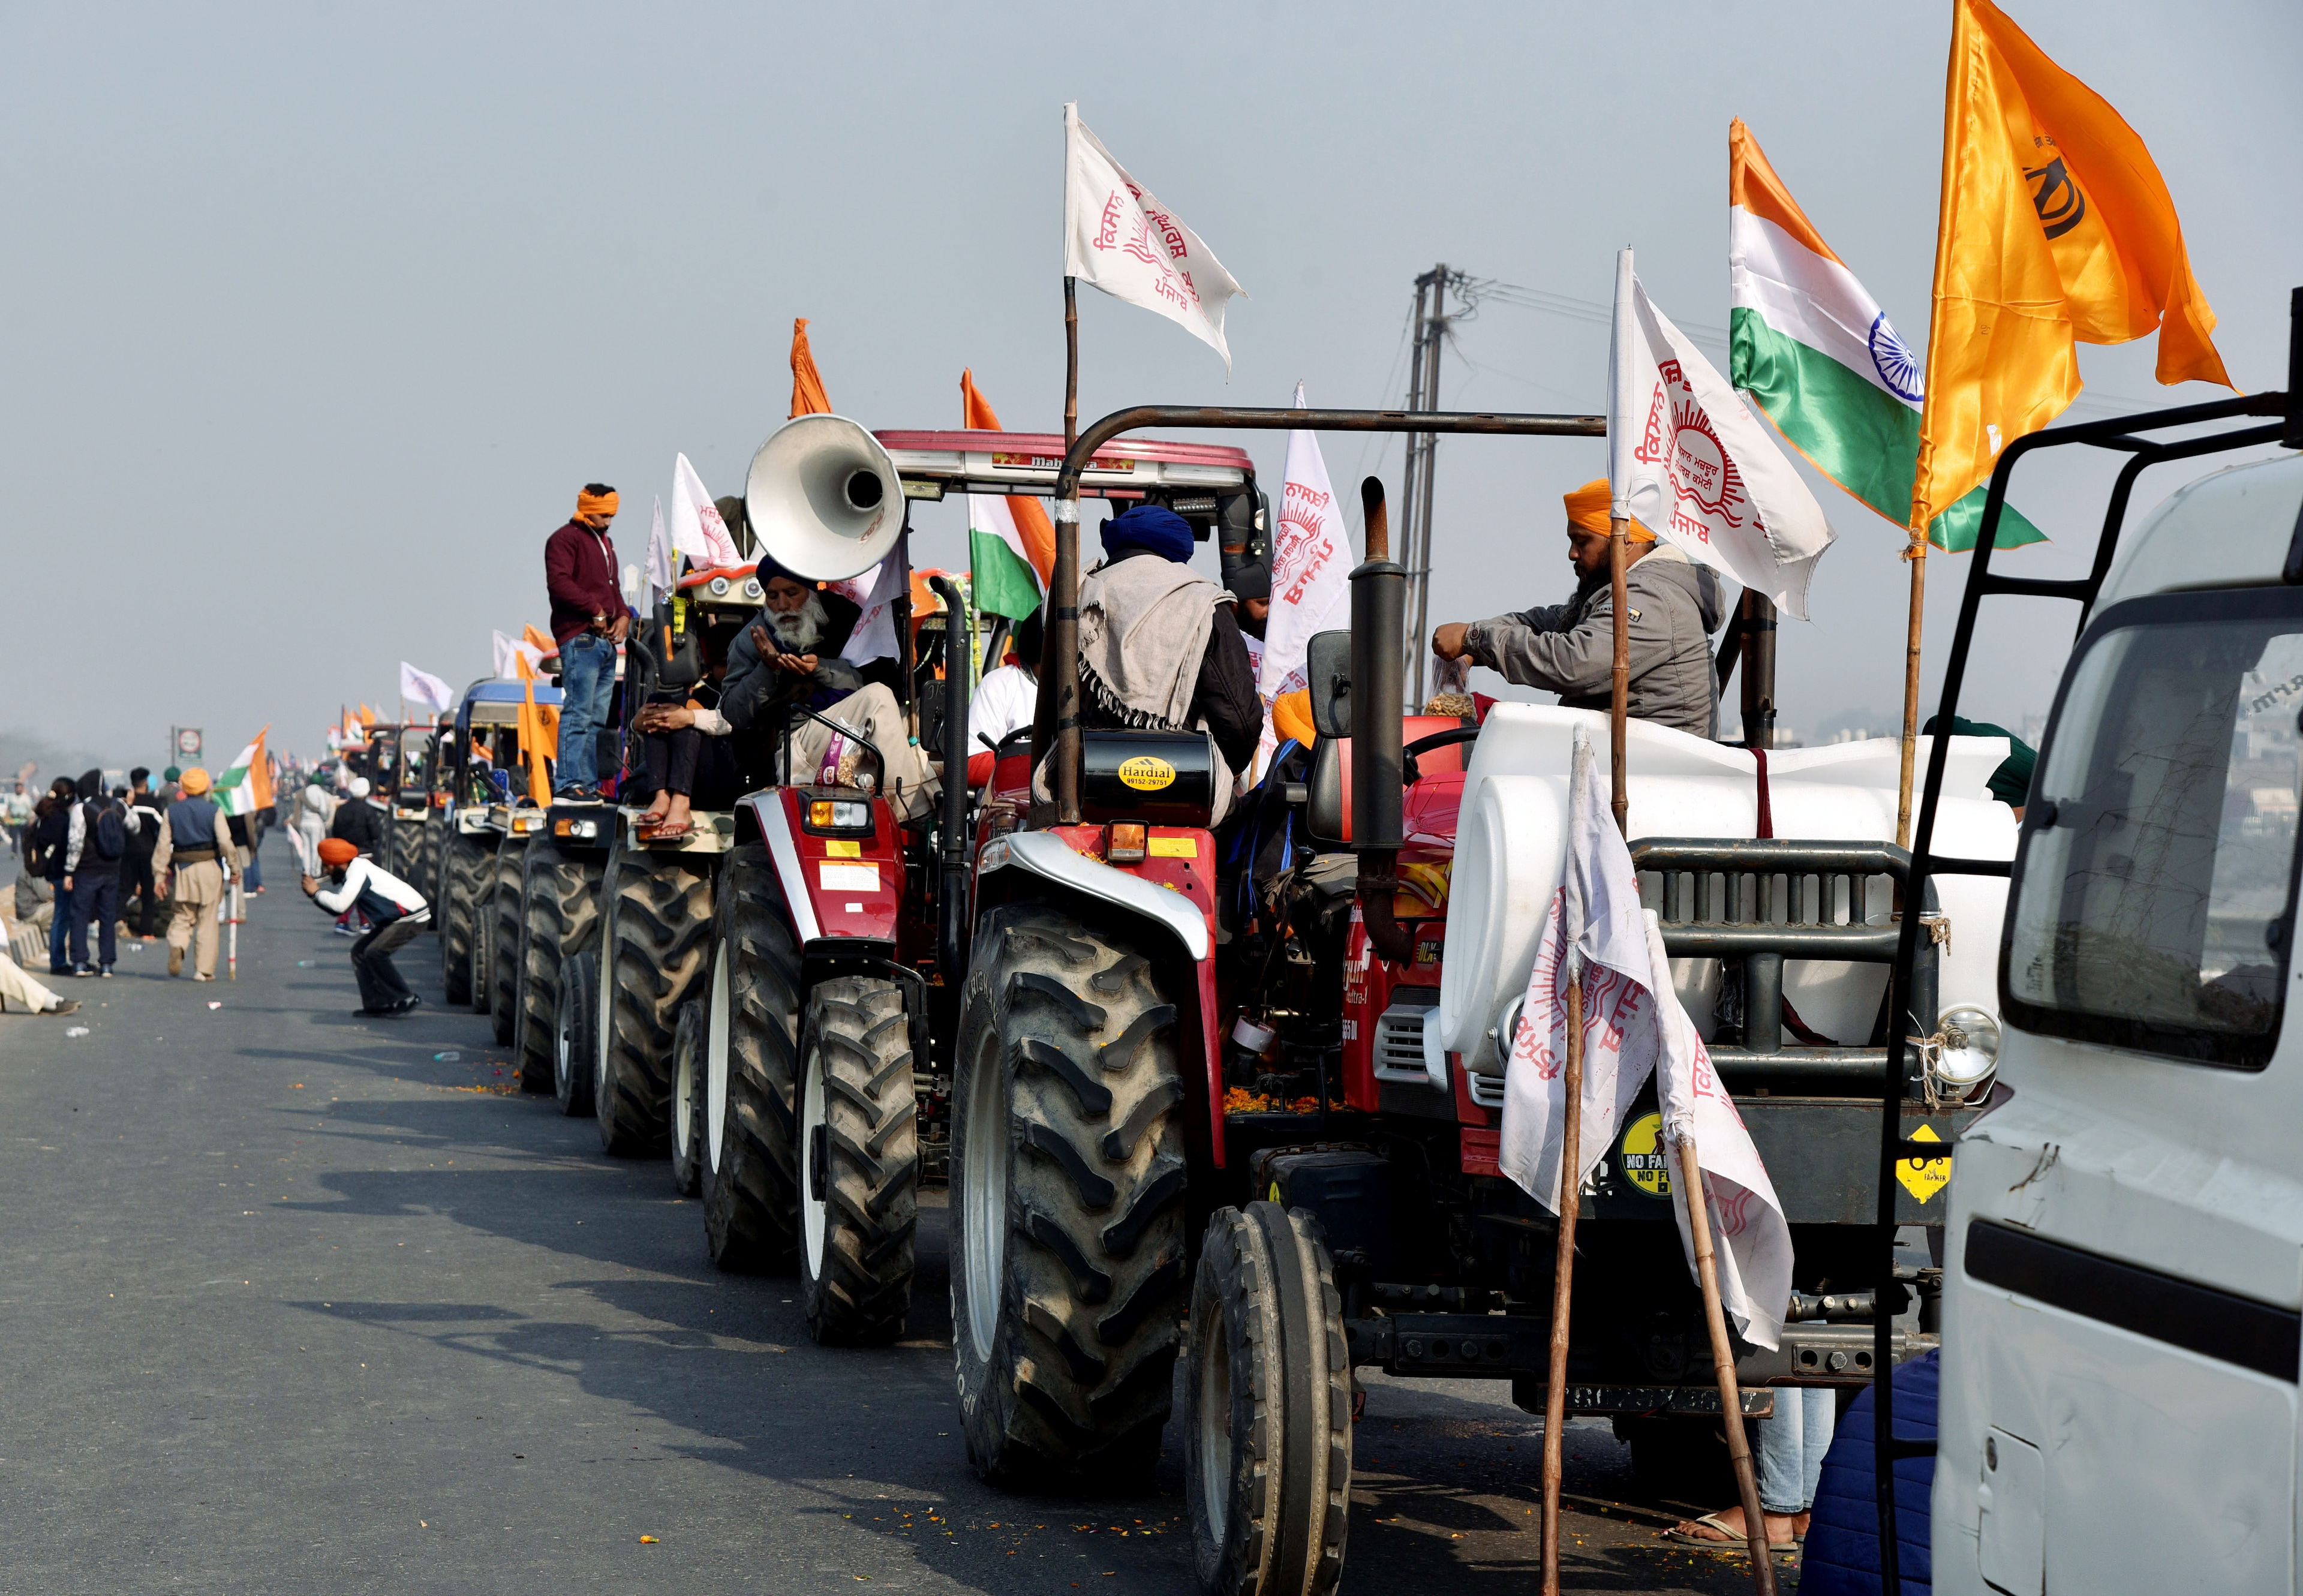 Tractors are seen during farmers' rally against the new farm laws at Mukarba Chowk near Singhu border in New Delhi